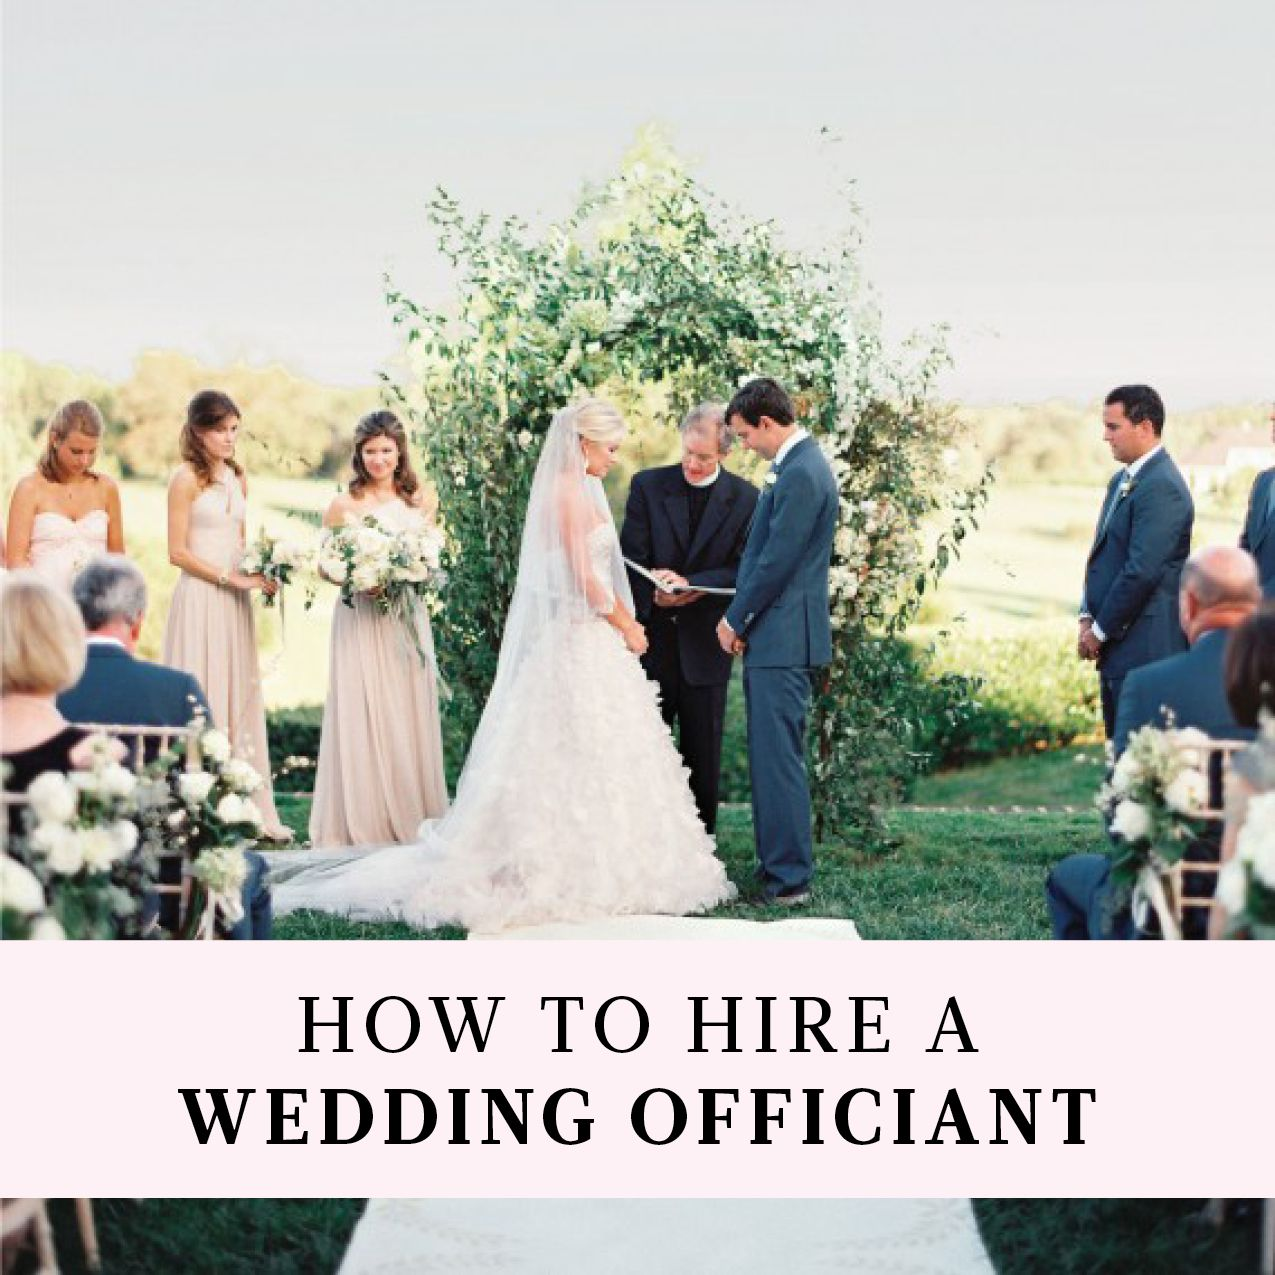 How To Hire A Wedding Officiant Wedding Officiant Wedding Officiant Business County Wedding